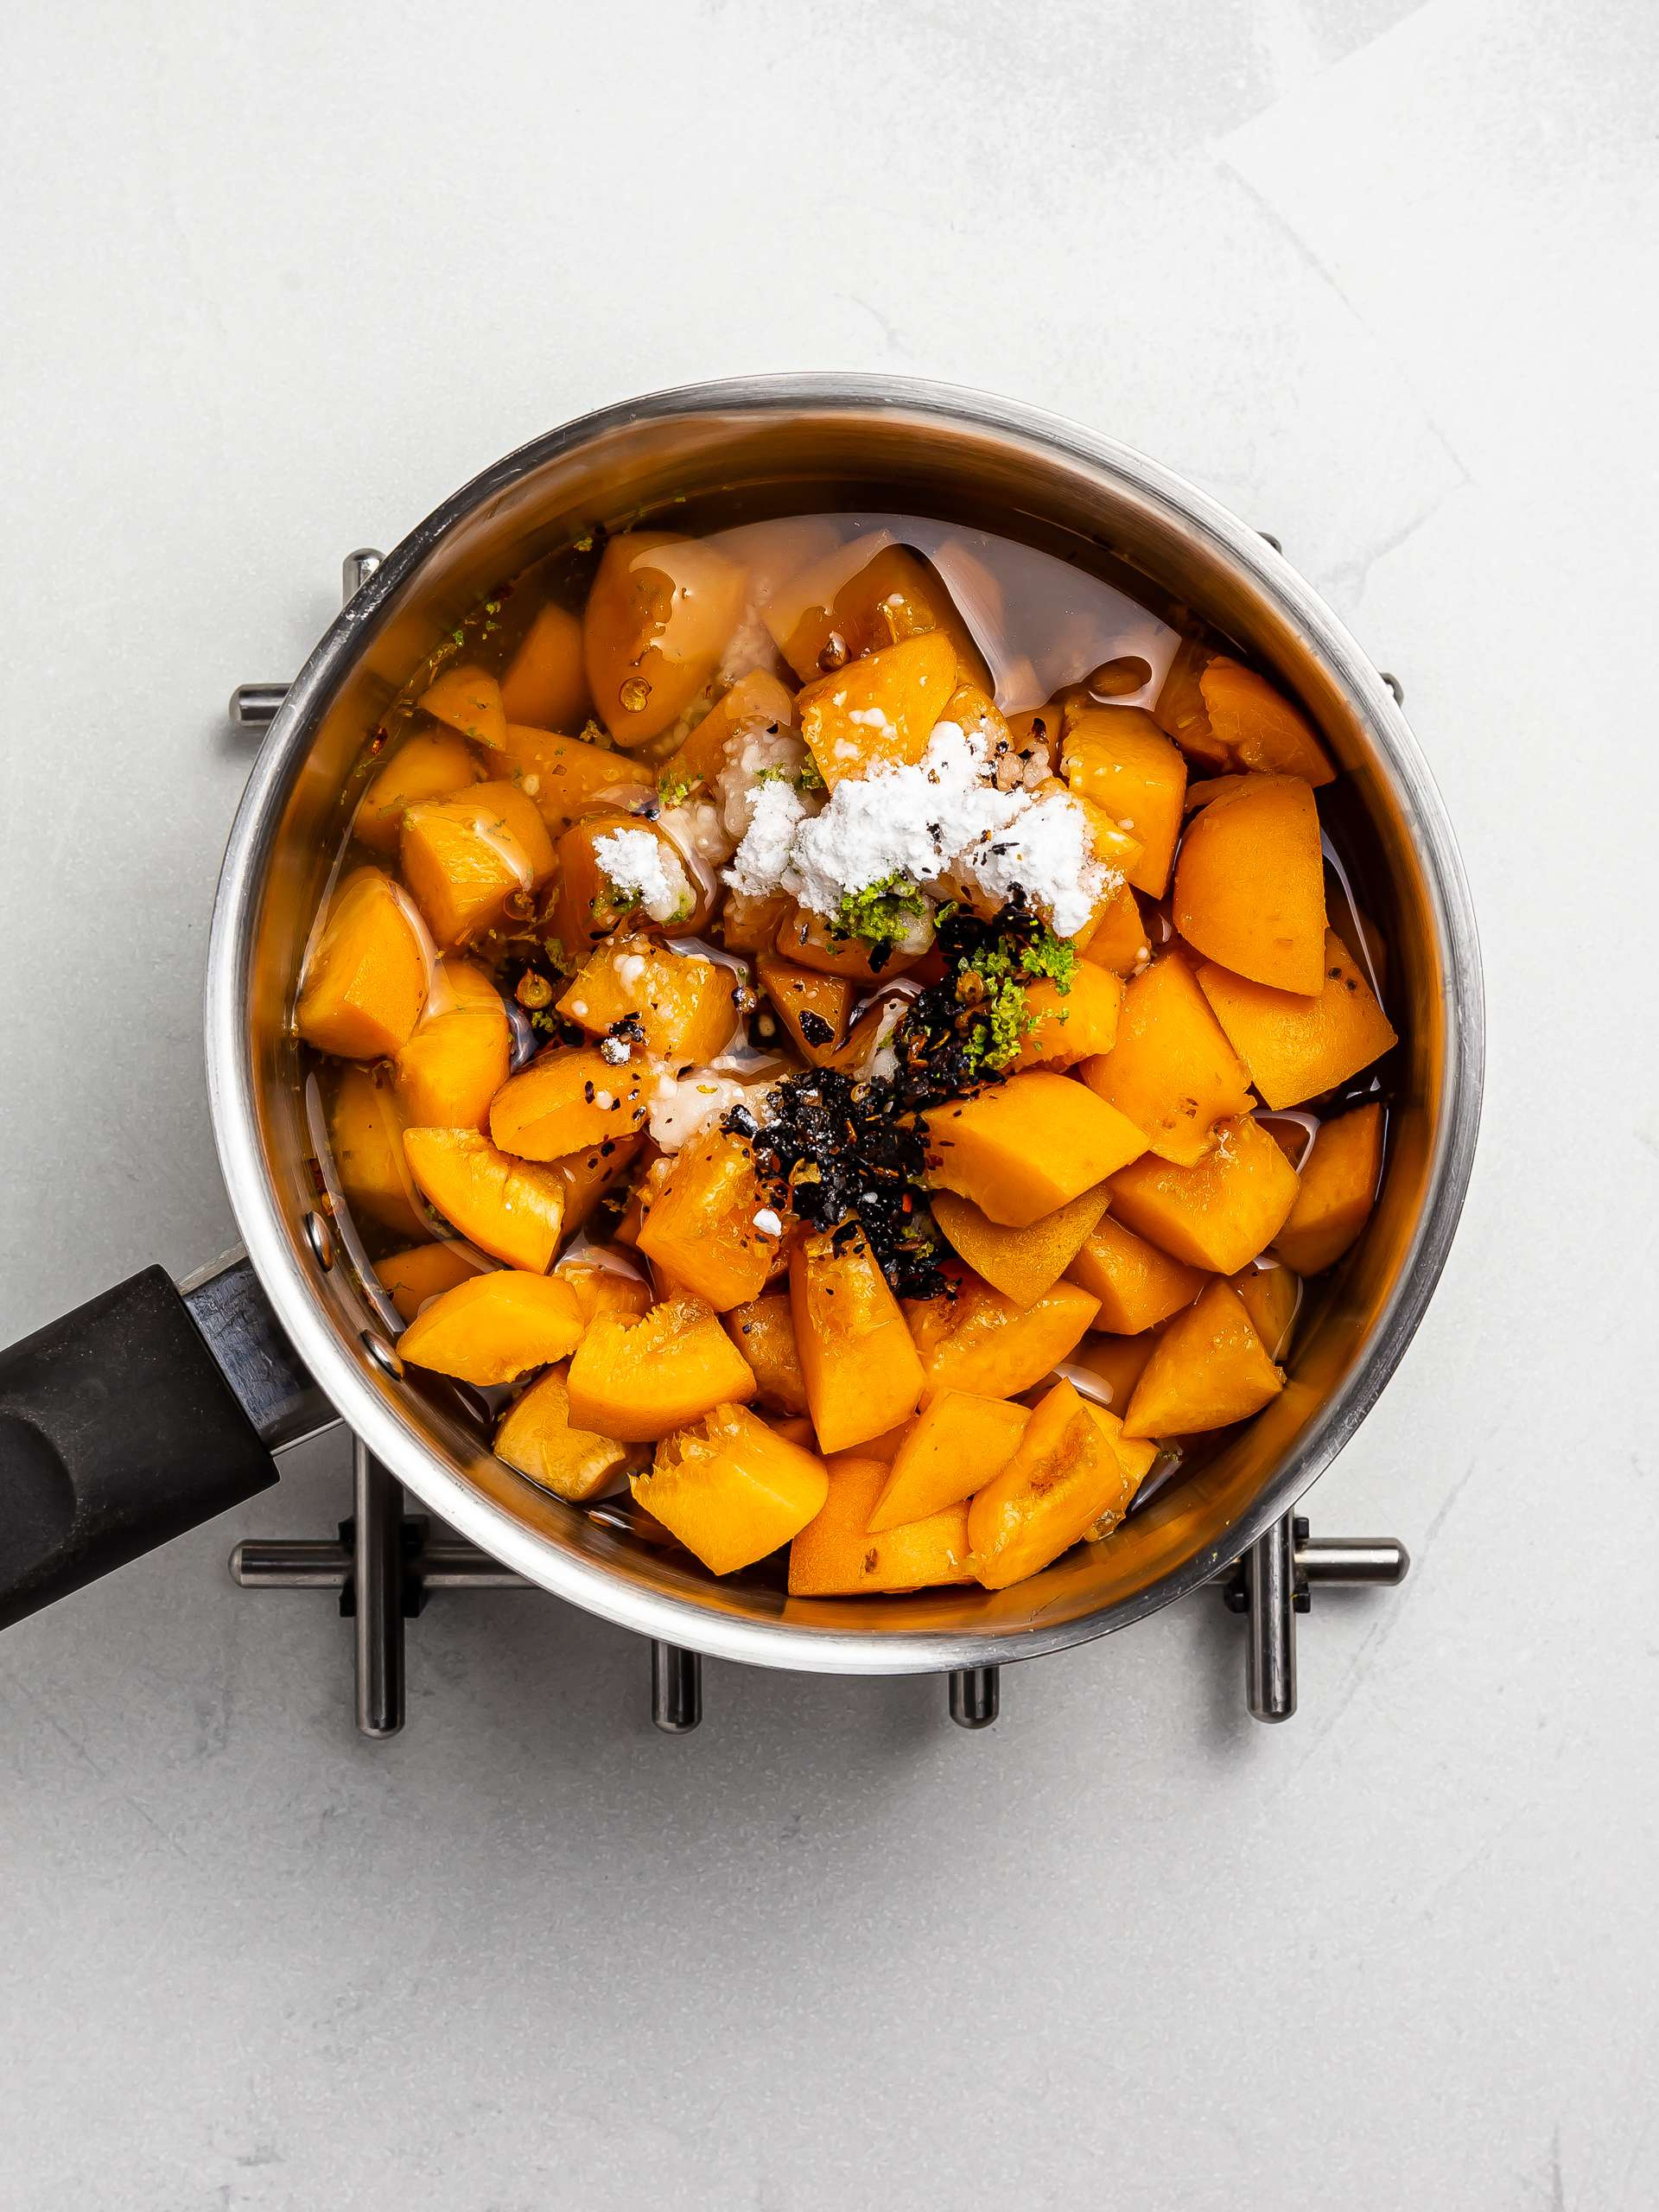 apricots lime and chillies in a pot for chamoy sauce